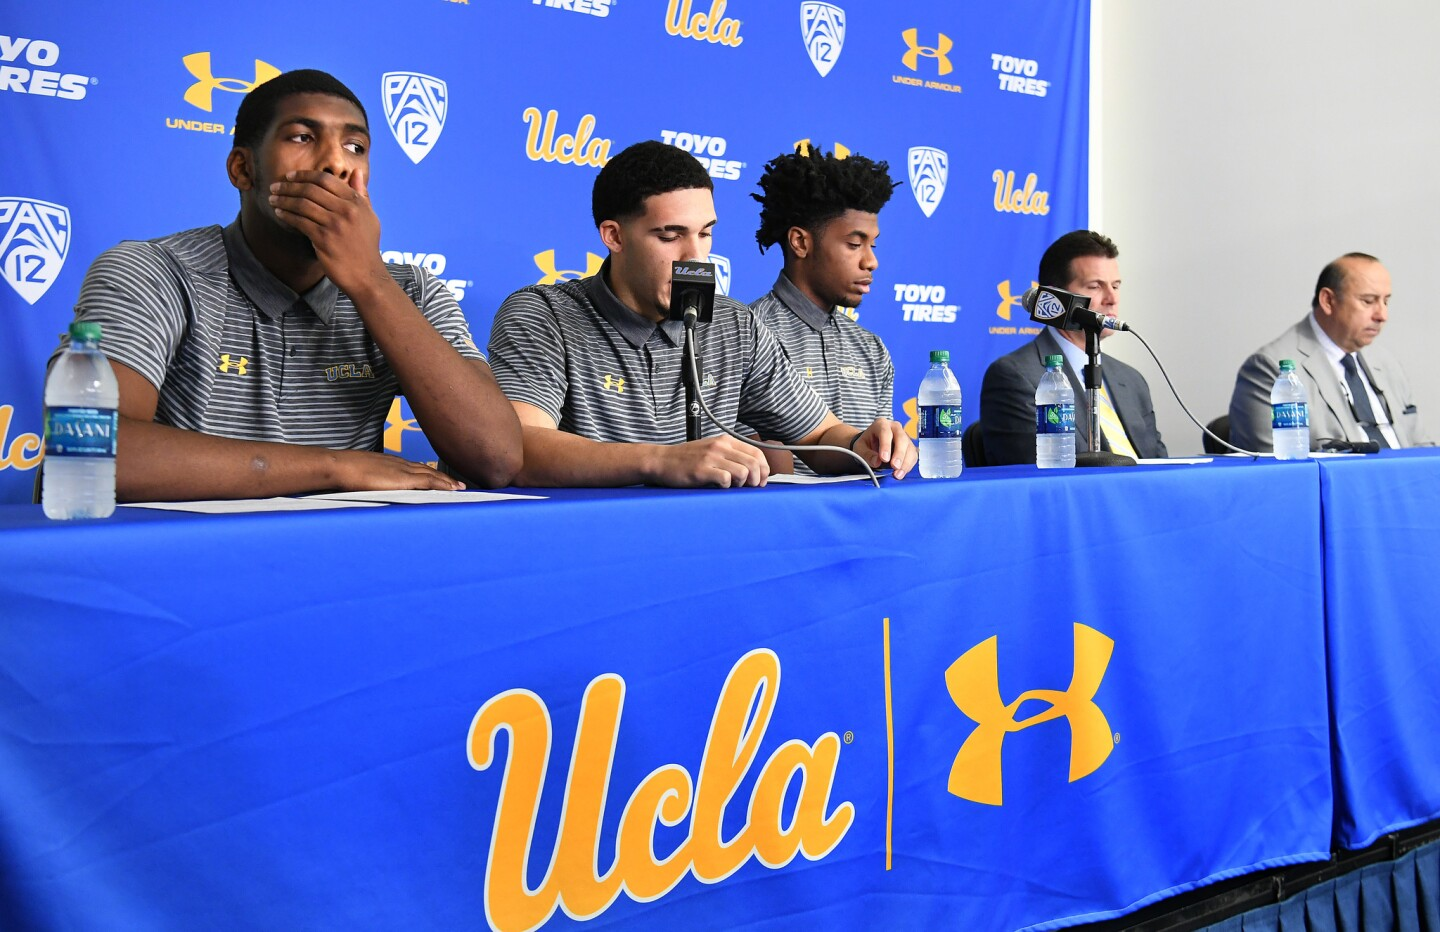 UCLA basketball players press conference